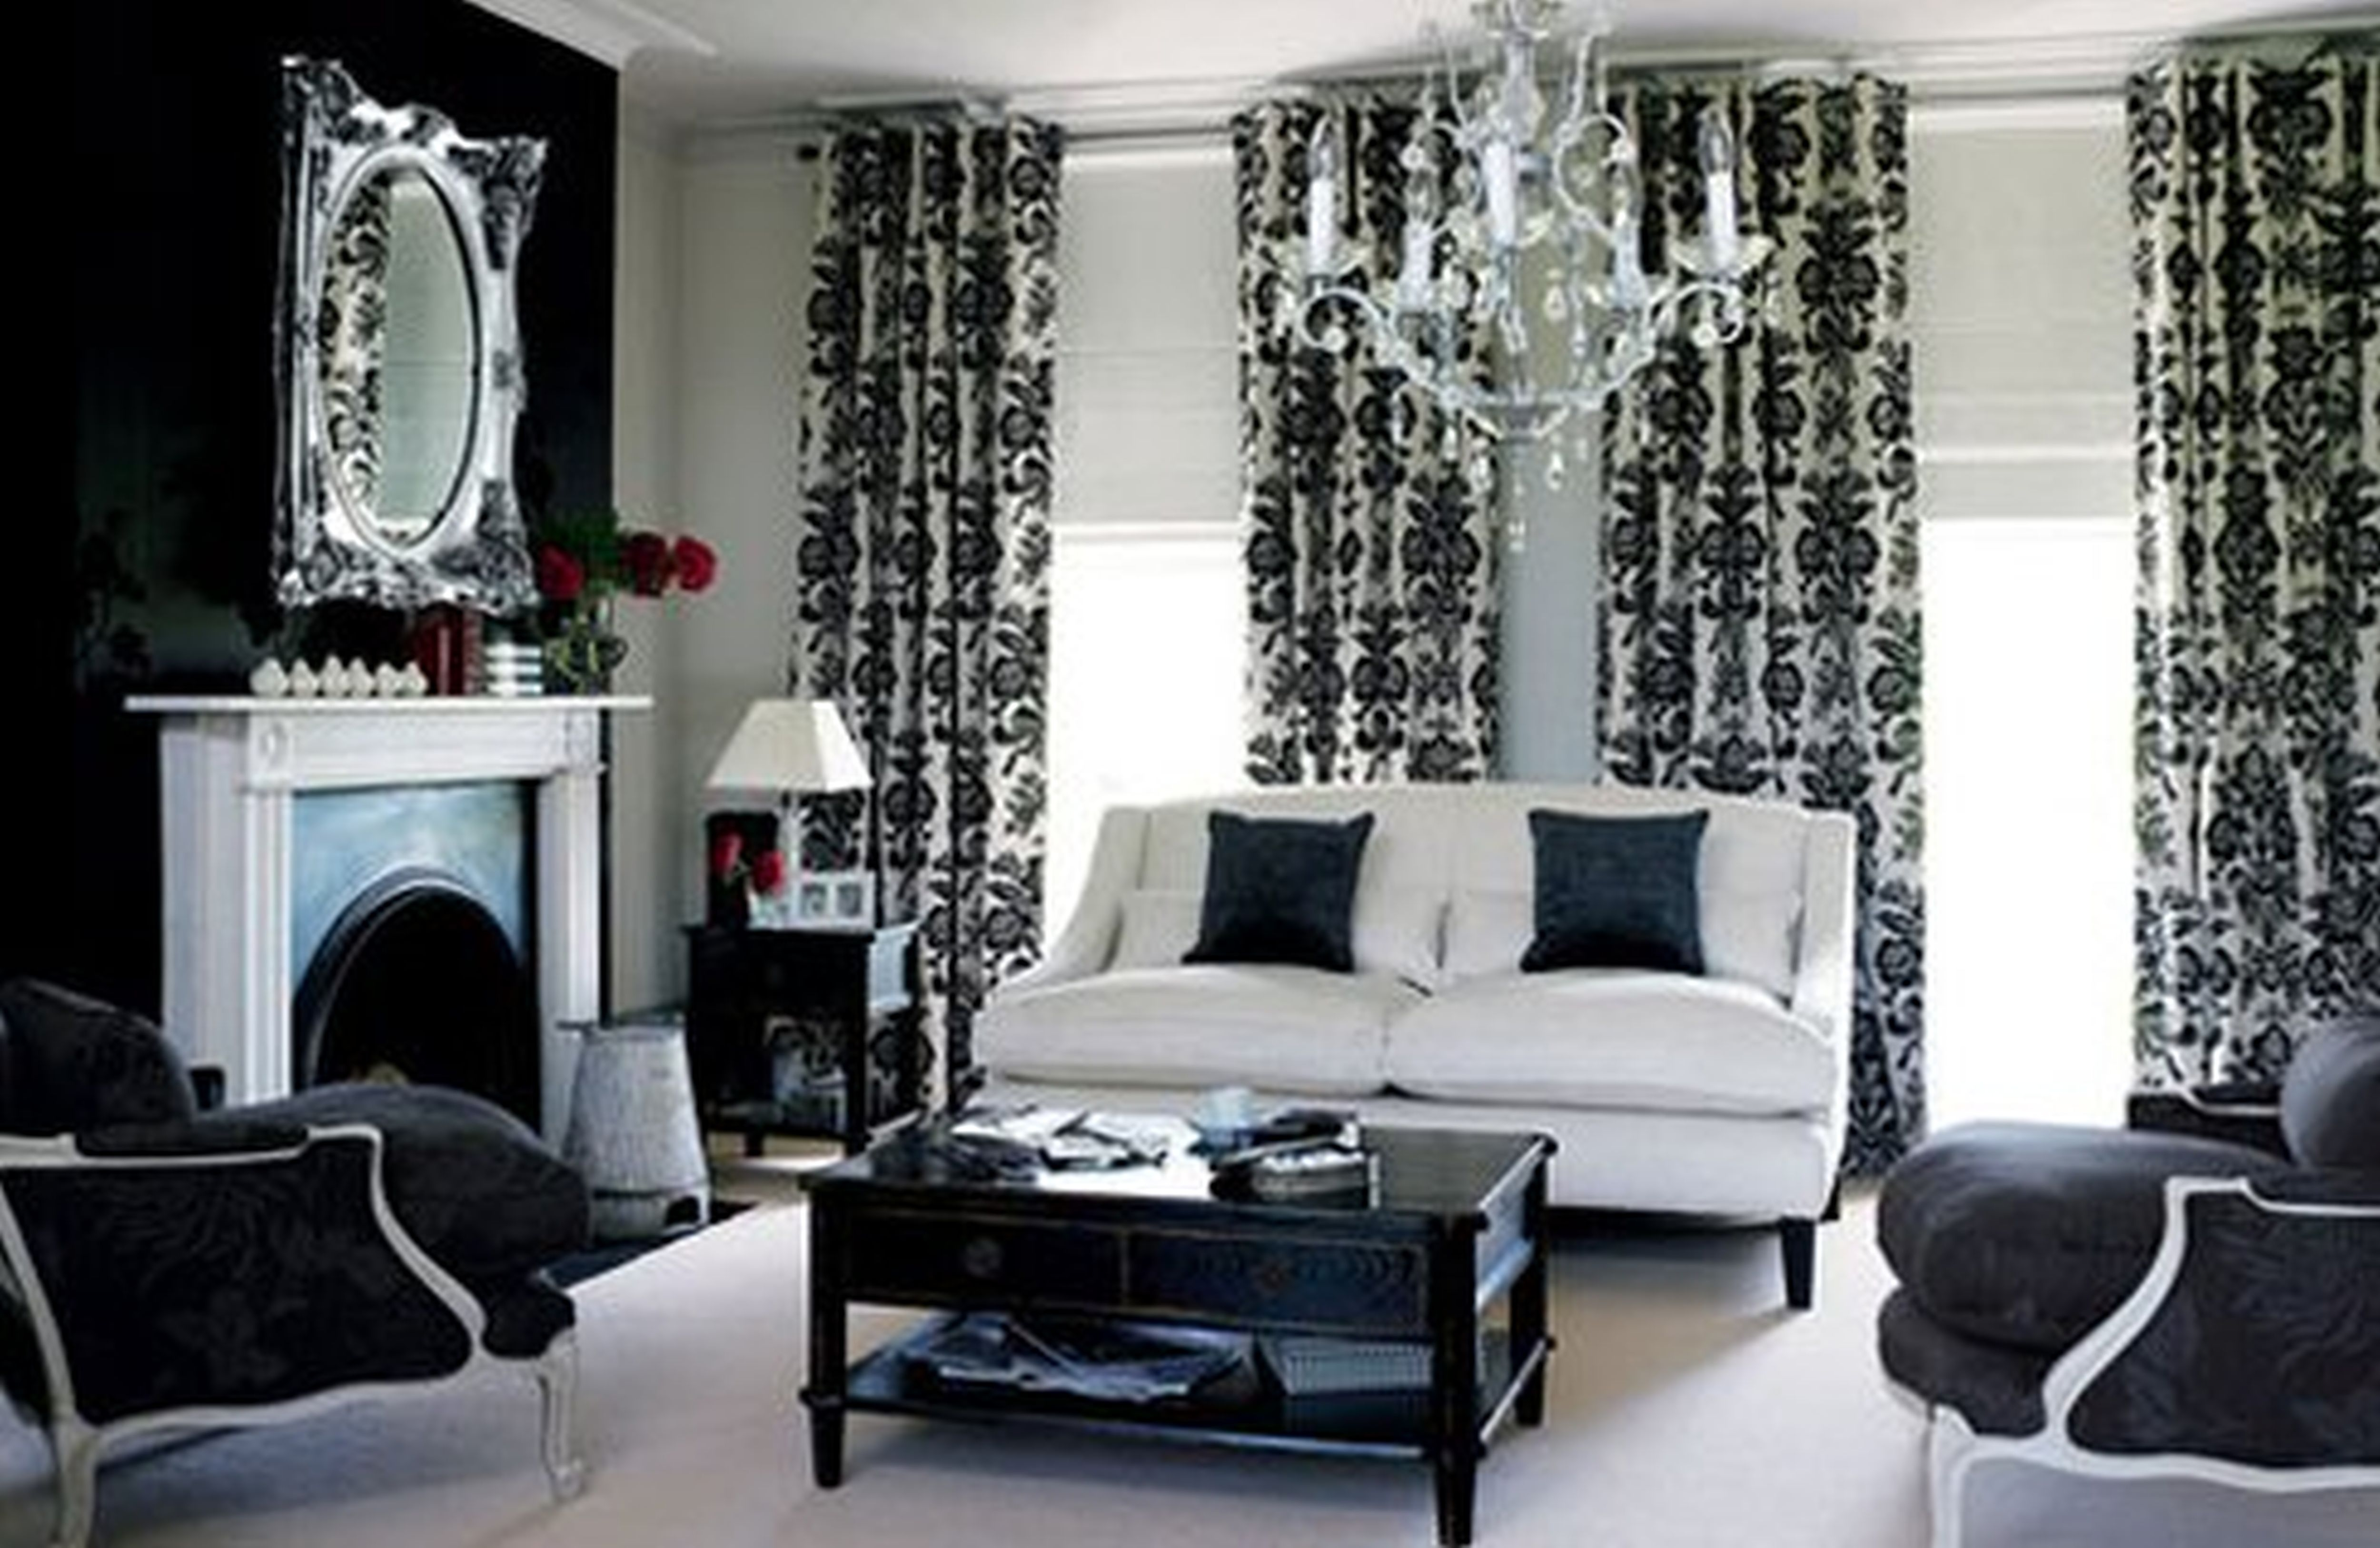 Bedroom Black Chandeliers For Lighting Style Best Chandelier Throughout Black Chandelier Bedroom (#3 of 12)